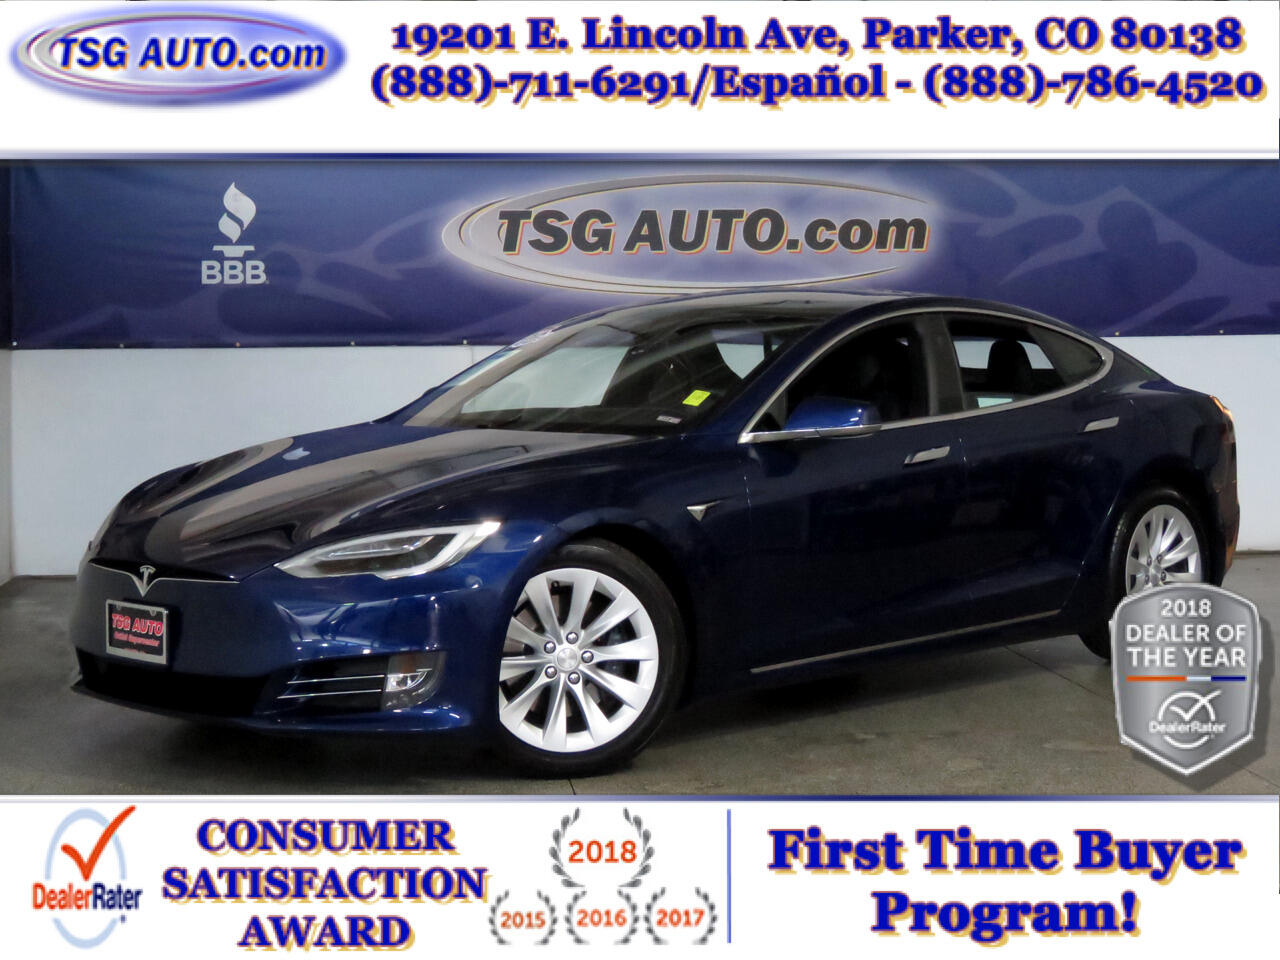 2017 Tesla Model S 2016.5 4dr Sdn AWD 75D